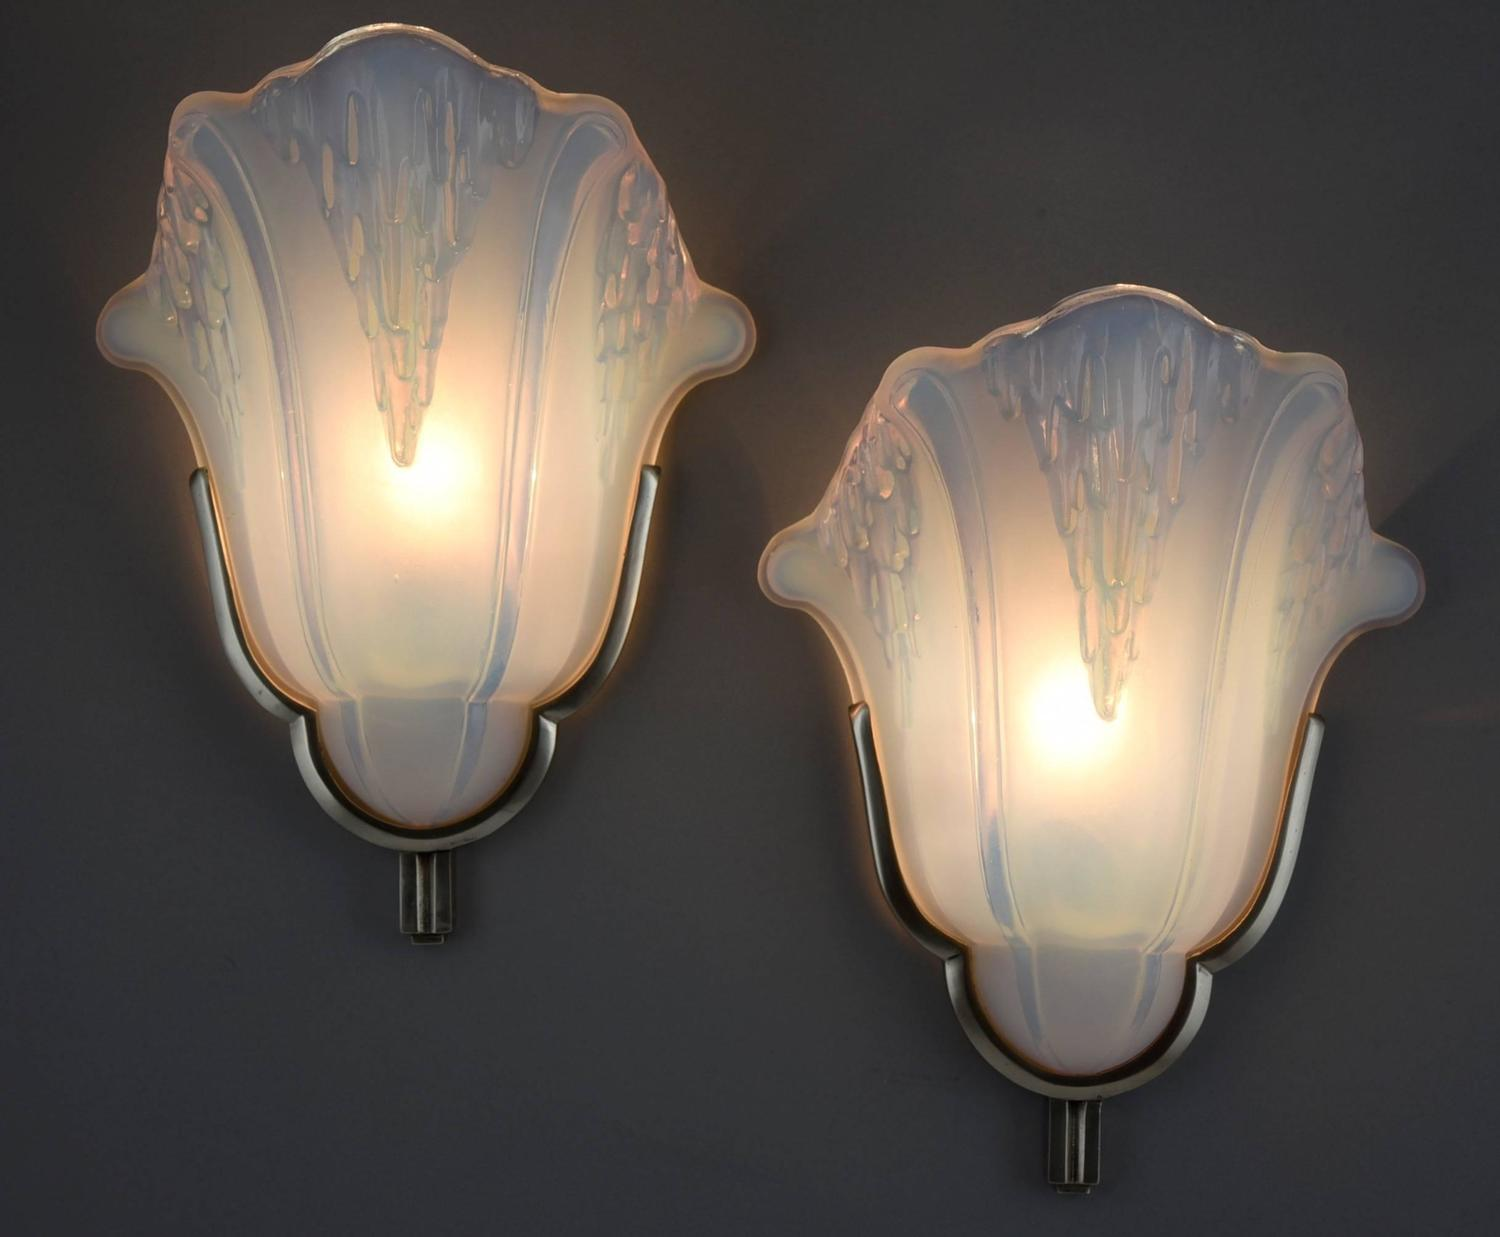 French art deco wall lights appliques by petitot 1930 at 1stdibs - Appliques art deco fabricant ...